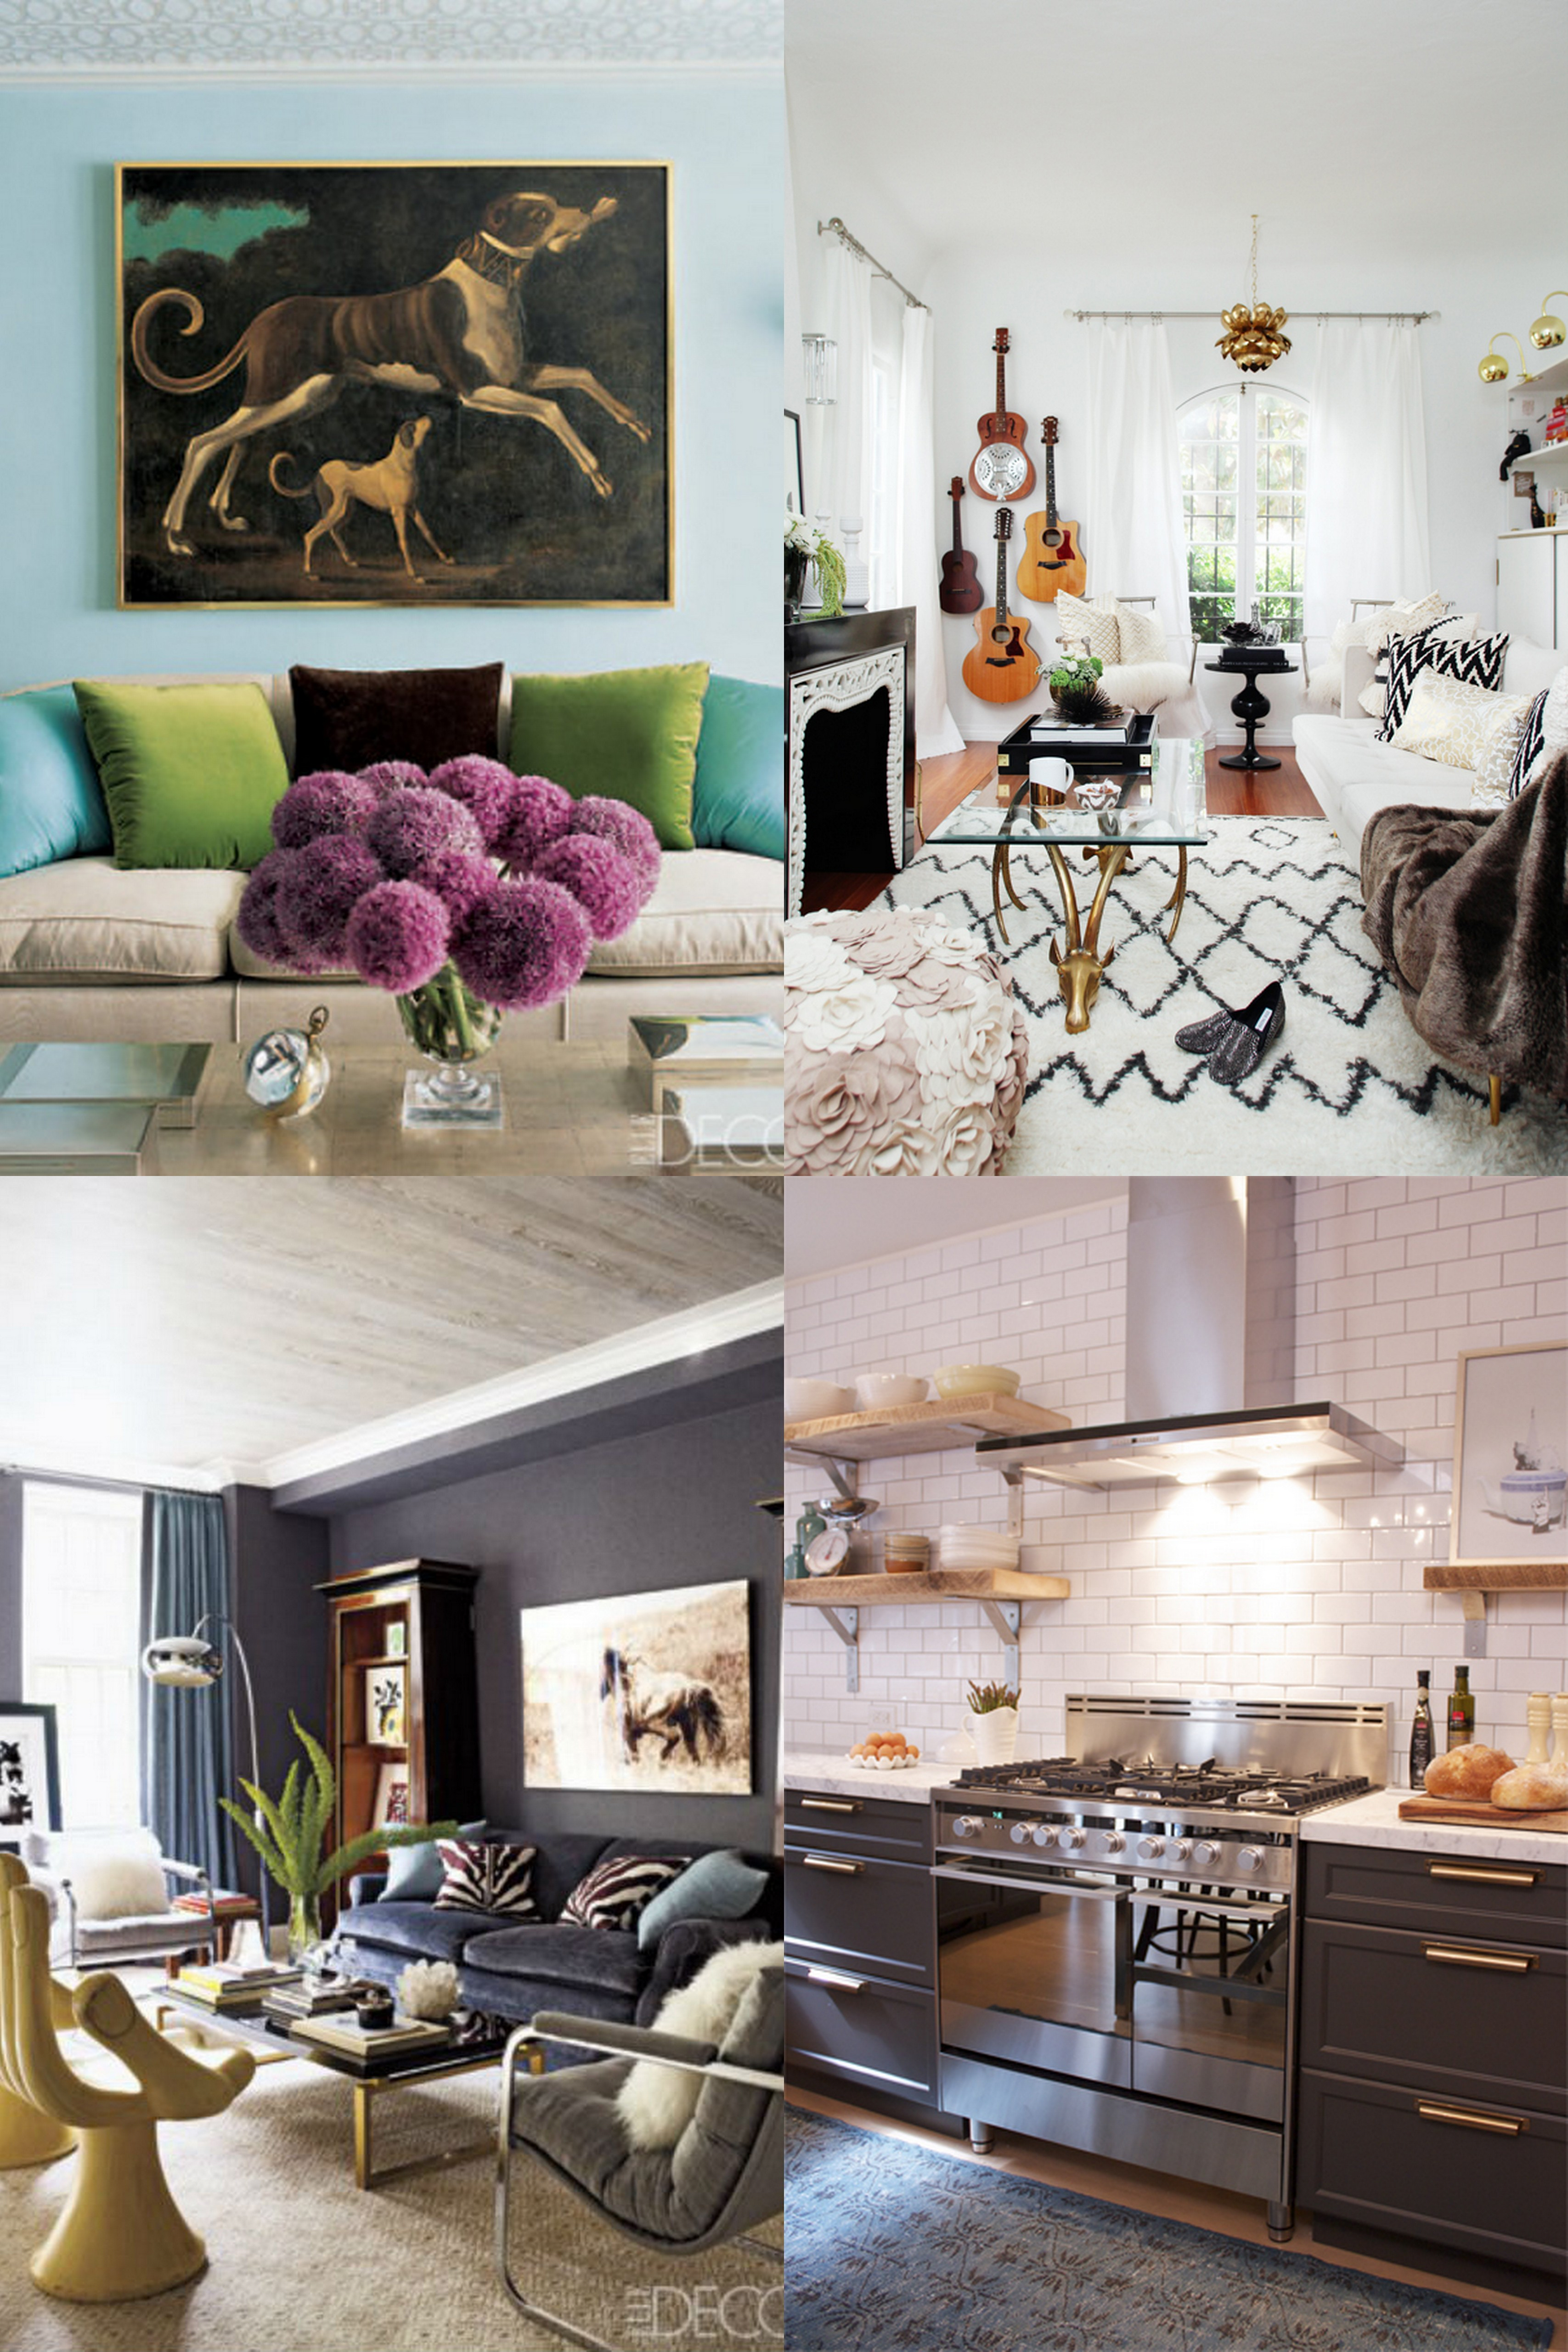 Interior design made easy mixing metals donnyosmondhome for Mixing metals in living room